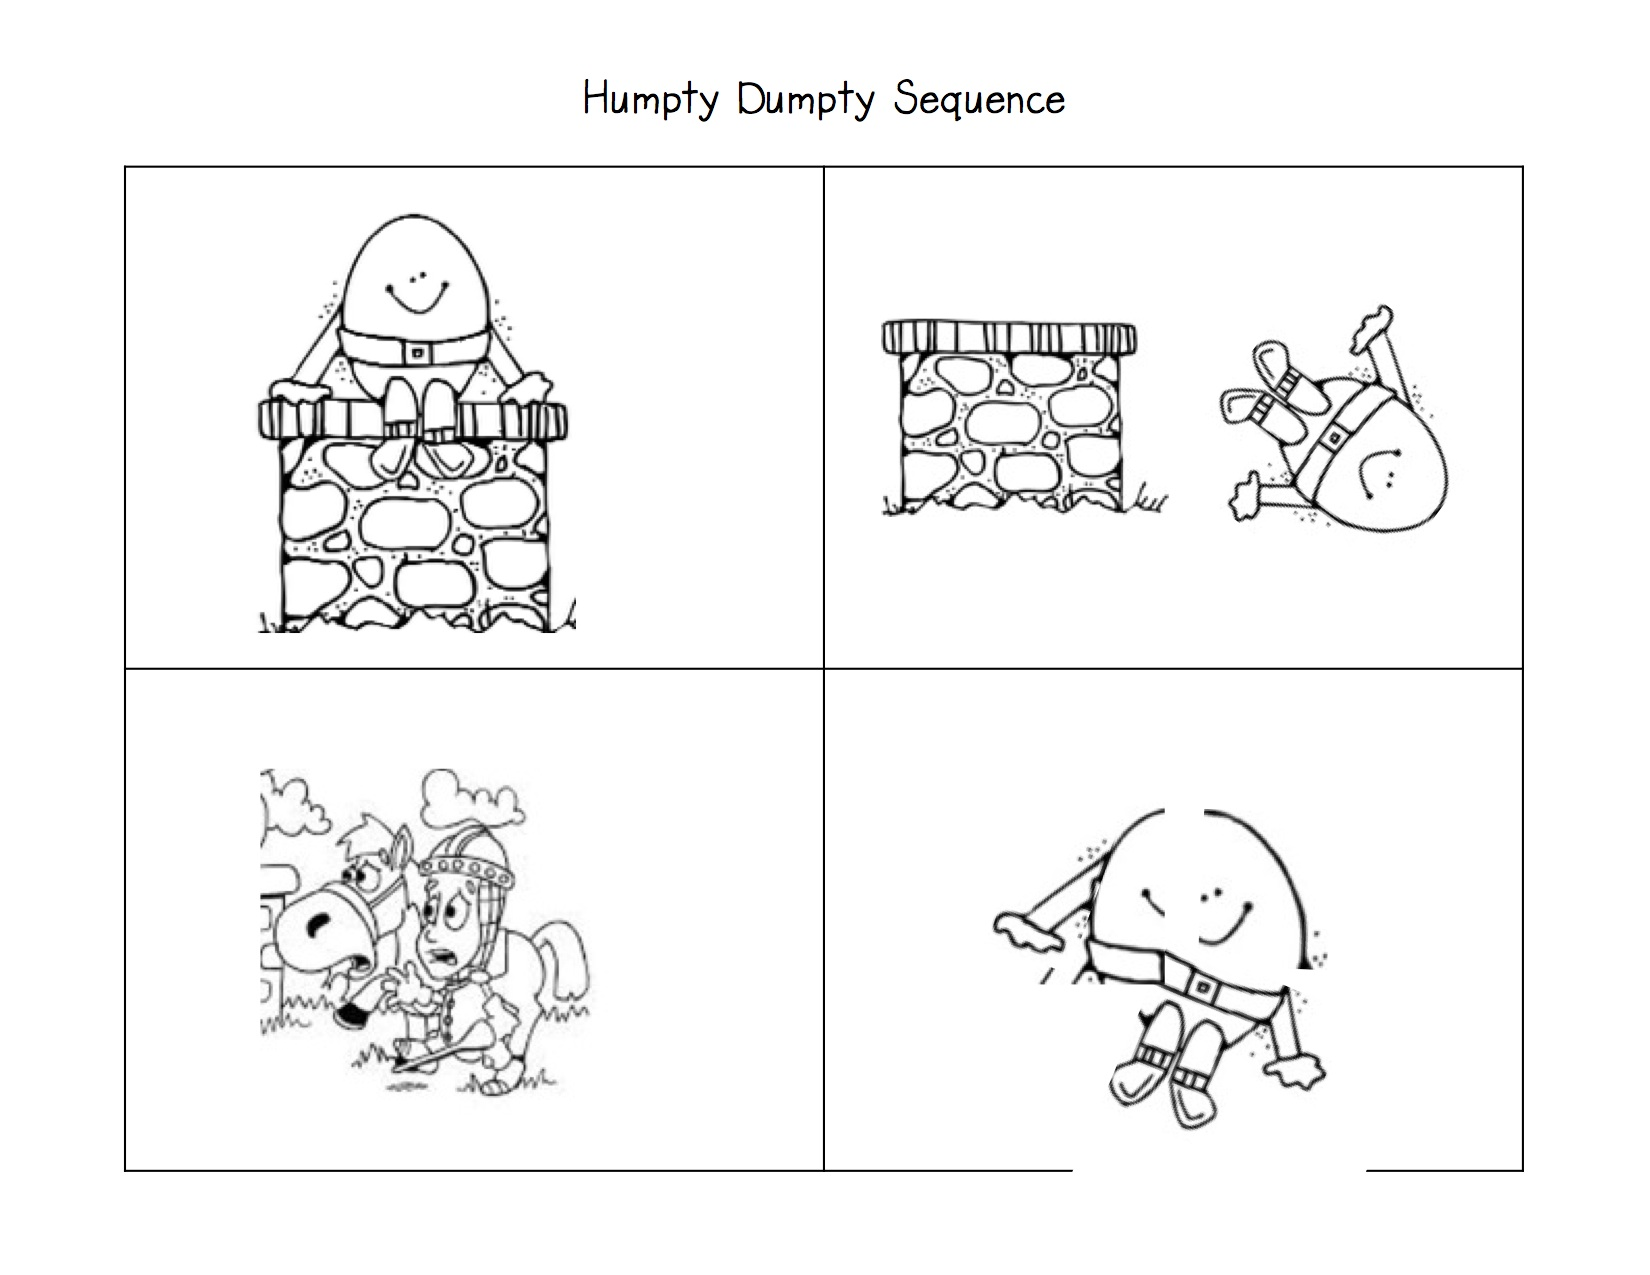 Worksheet Sequencing Events In A Story Worksheets Wosenly Free – Sequence of Events Worksheet